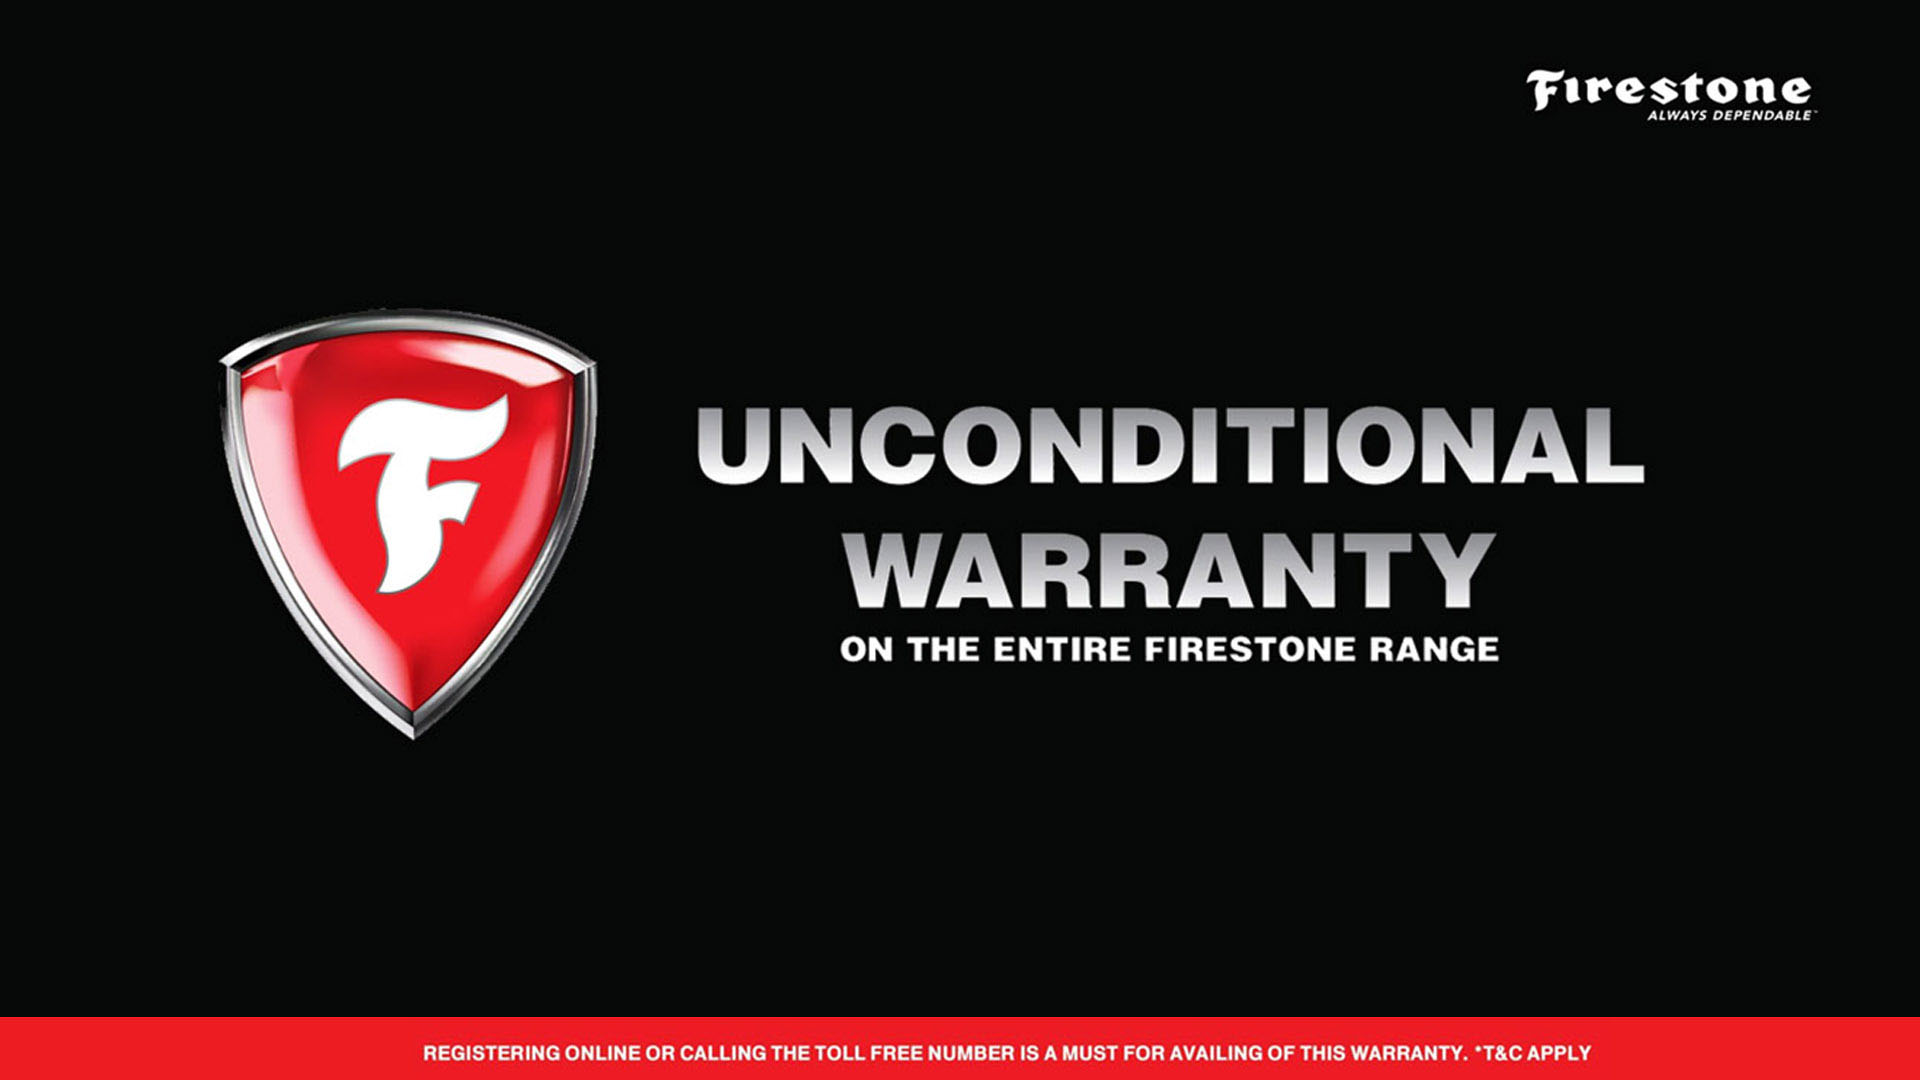 Unconditional Warranty Policy